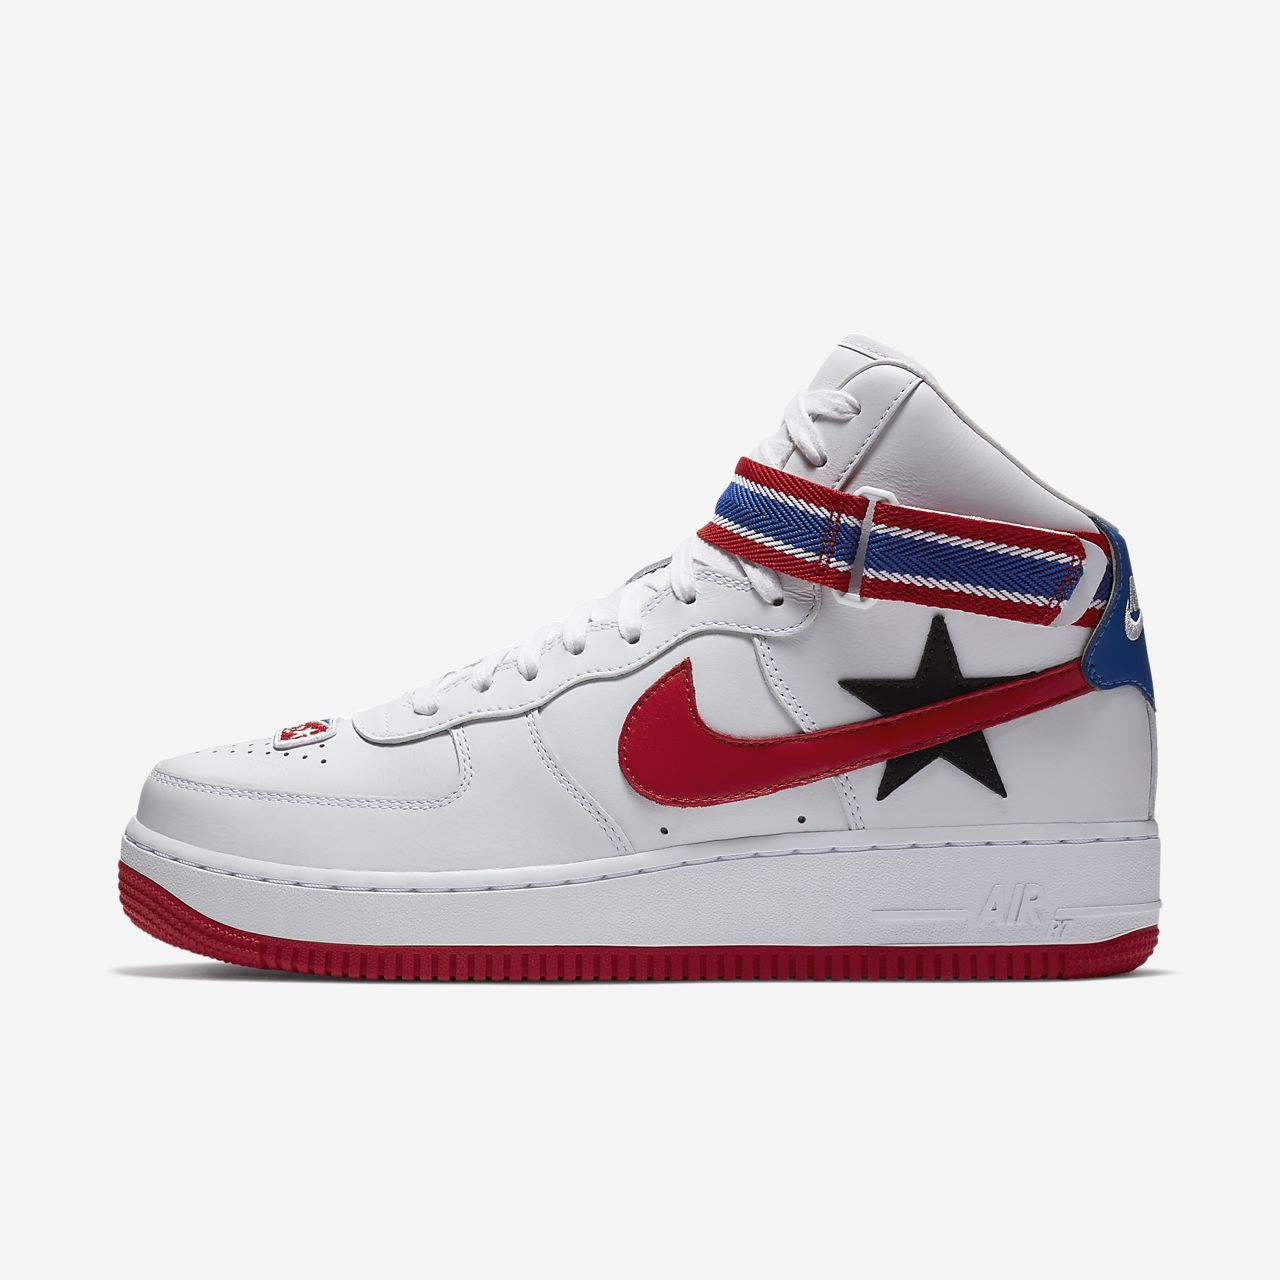 NikeLab Air Force 1 High x RT Men's Shoe